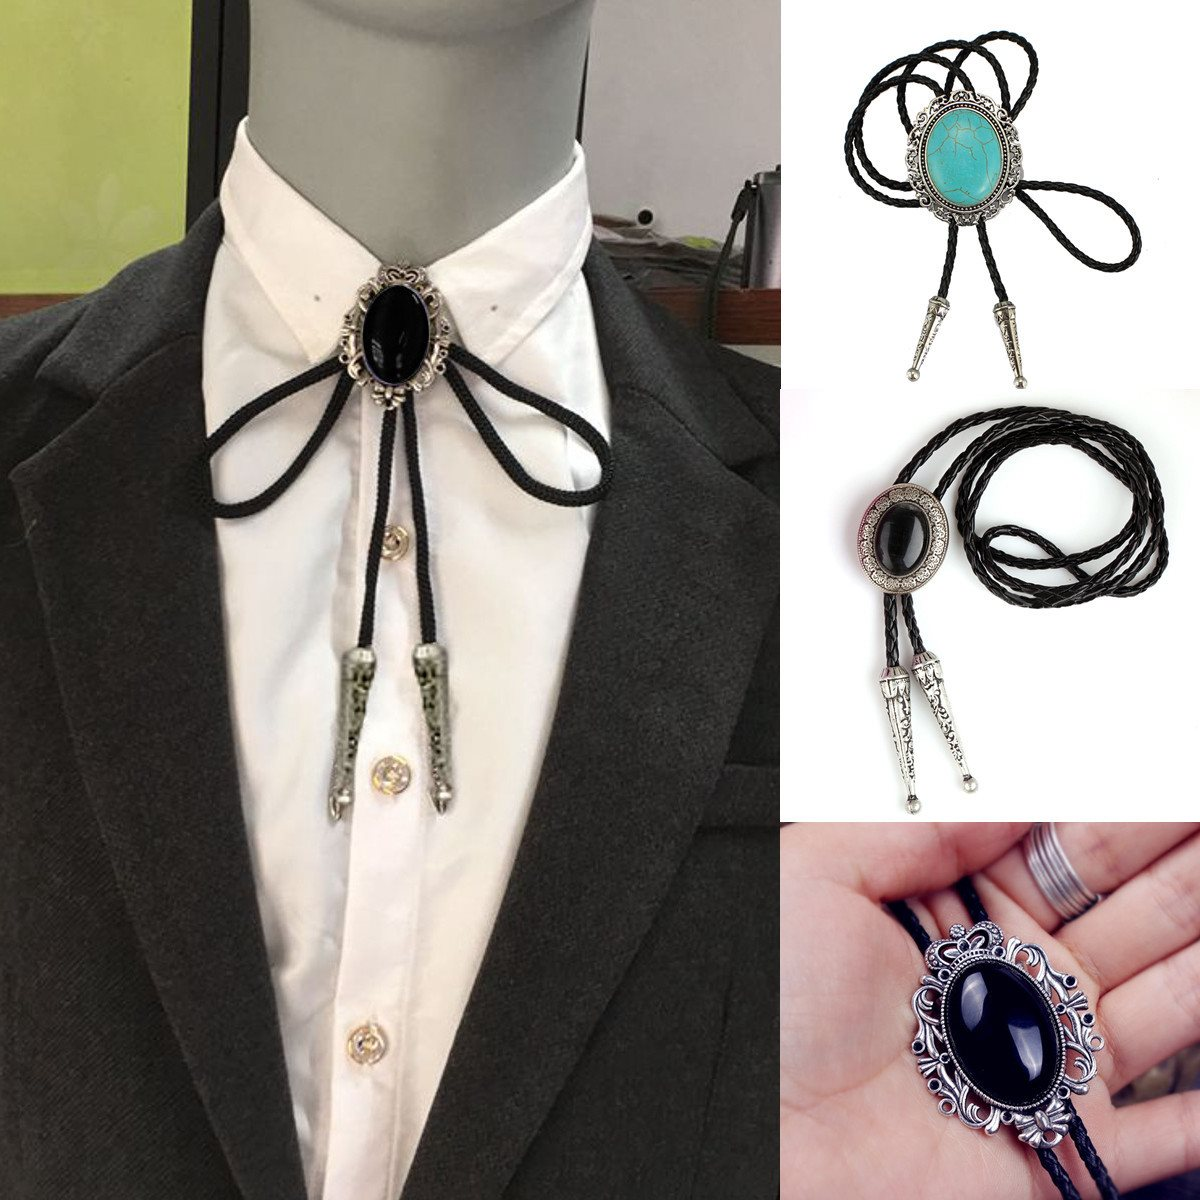 Indian Rhinestone Bolo Tie Dance Bola Tie PU Leather Necklace Flower Necktie Black Opal Western Cowboy Men Chain